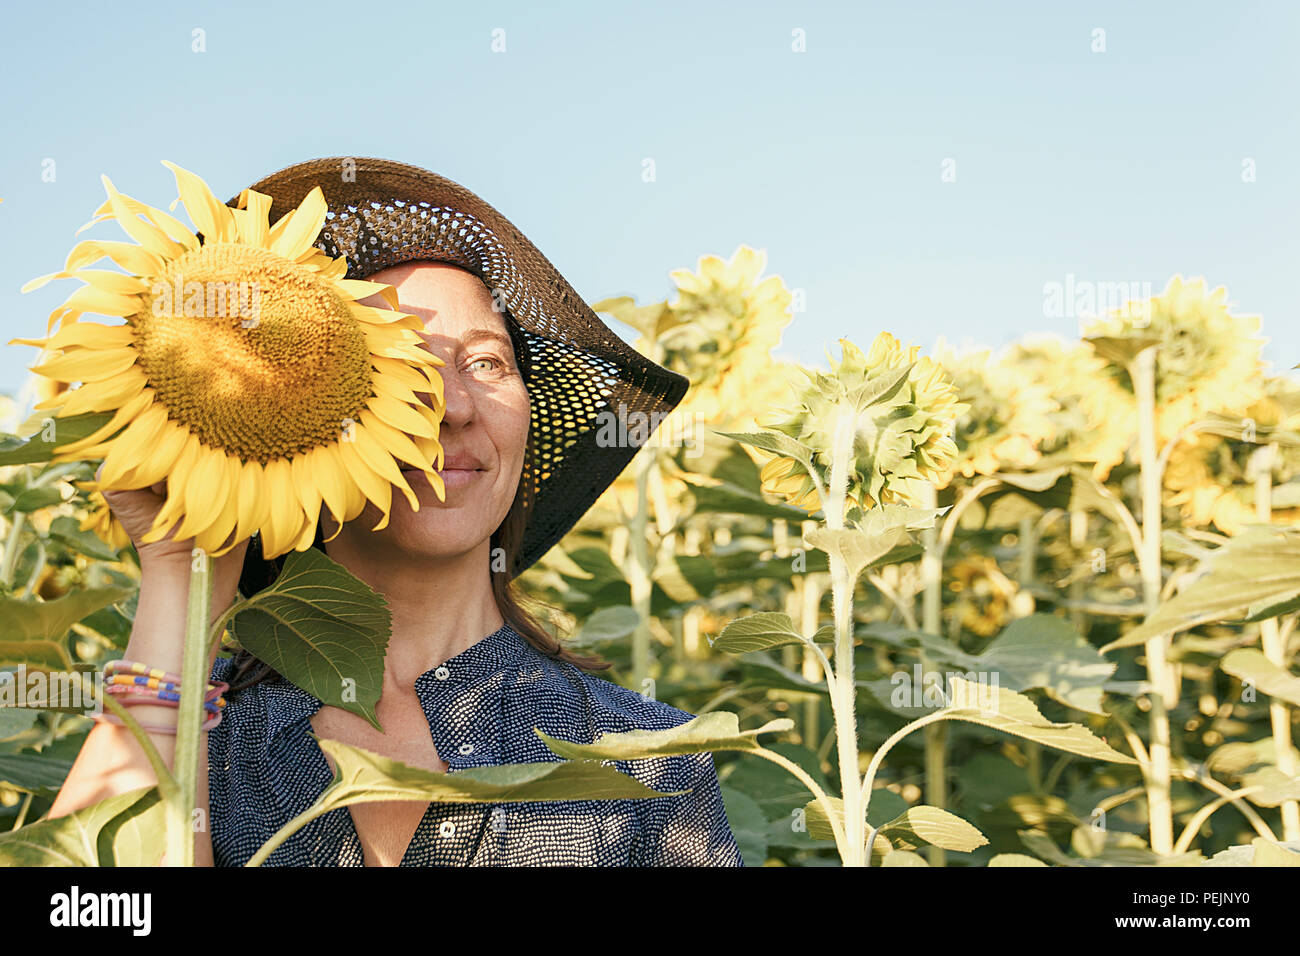 woman among the sunflowers Stock Photo